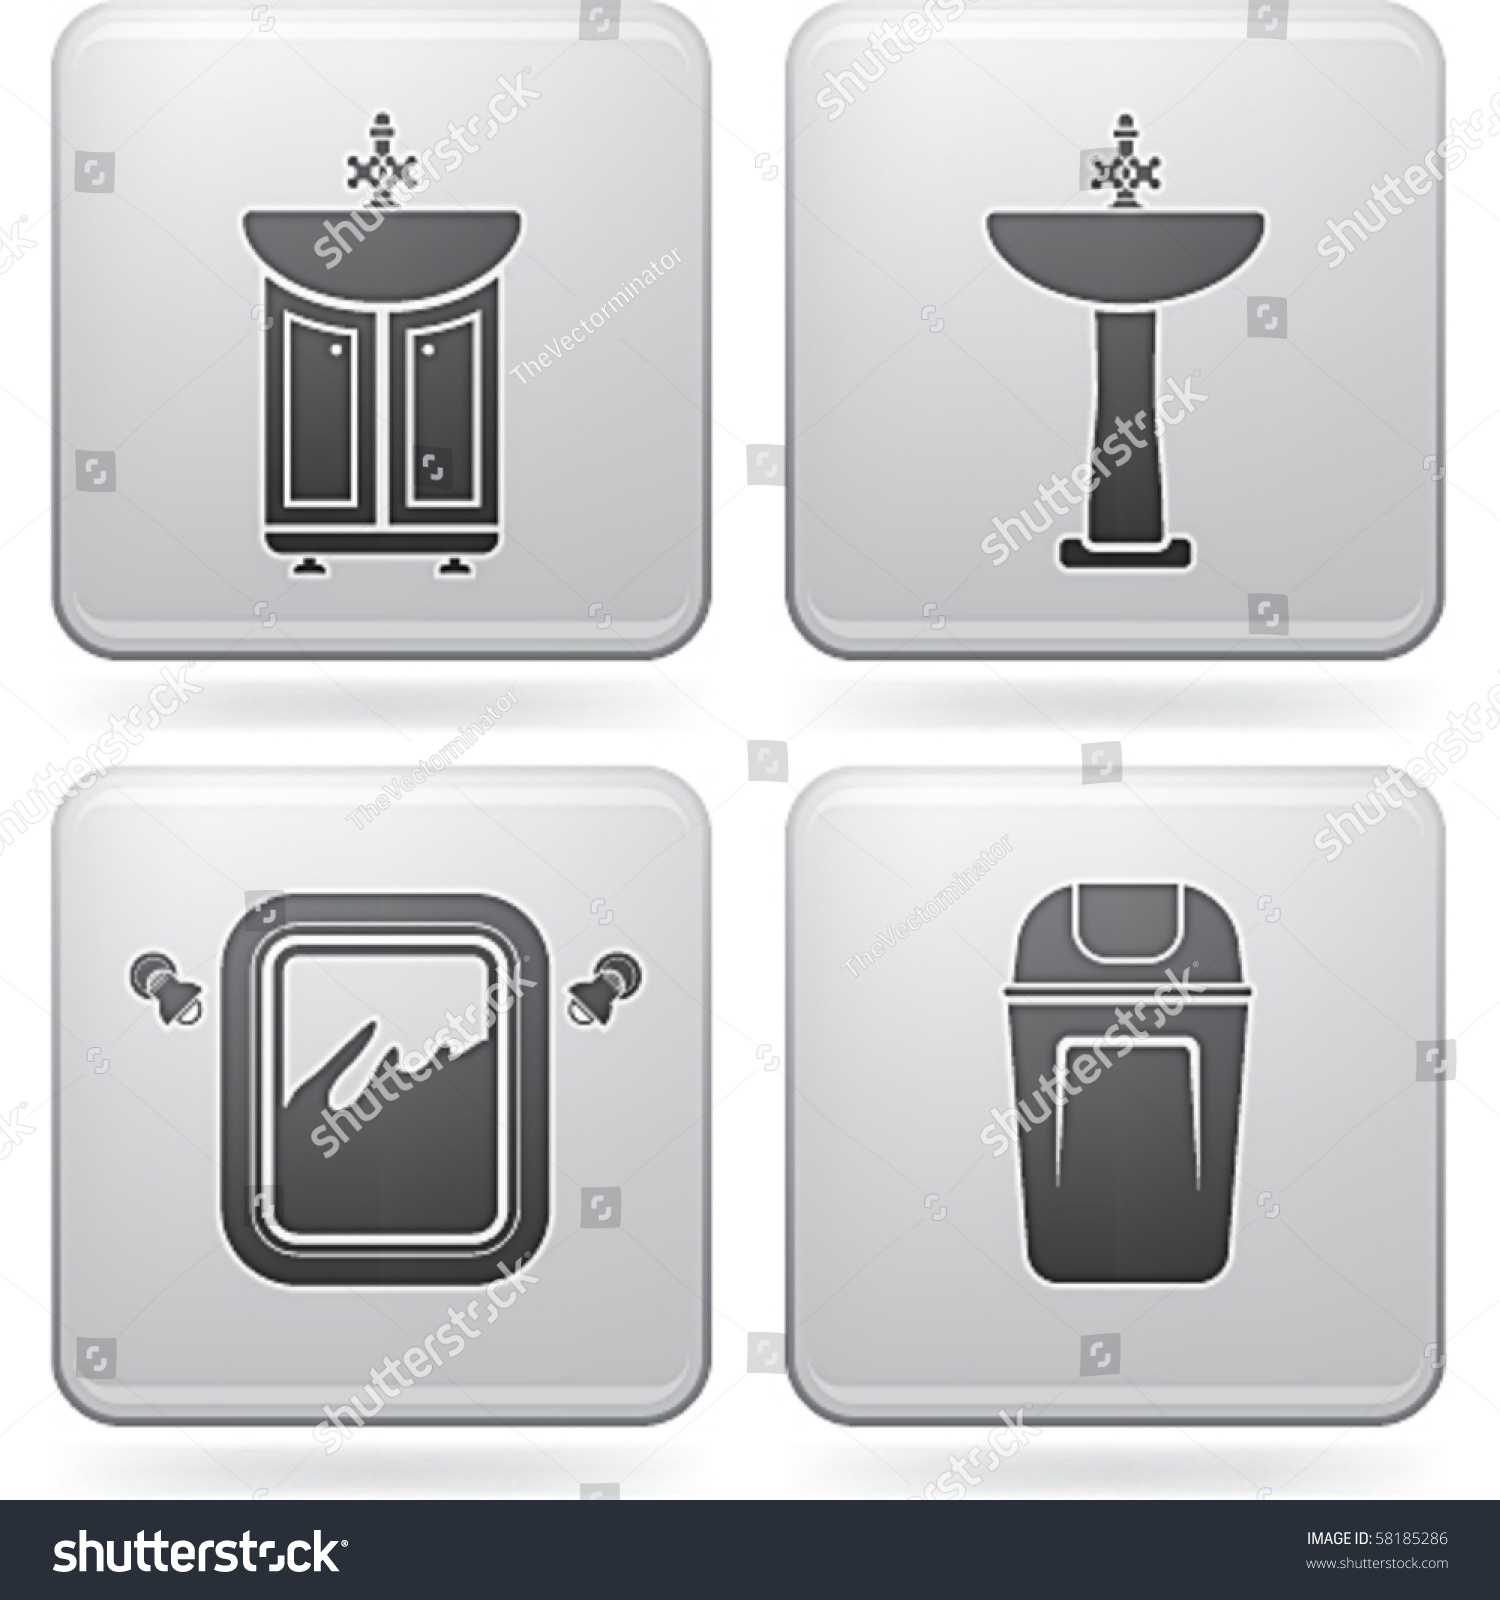 Bathroom appliances stock vector 58185286 shutterstock for Restroom appliances